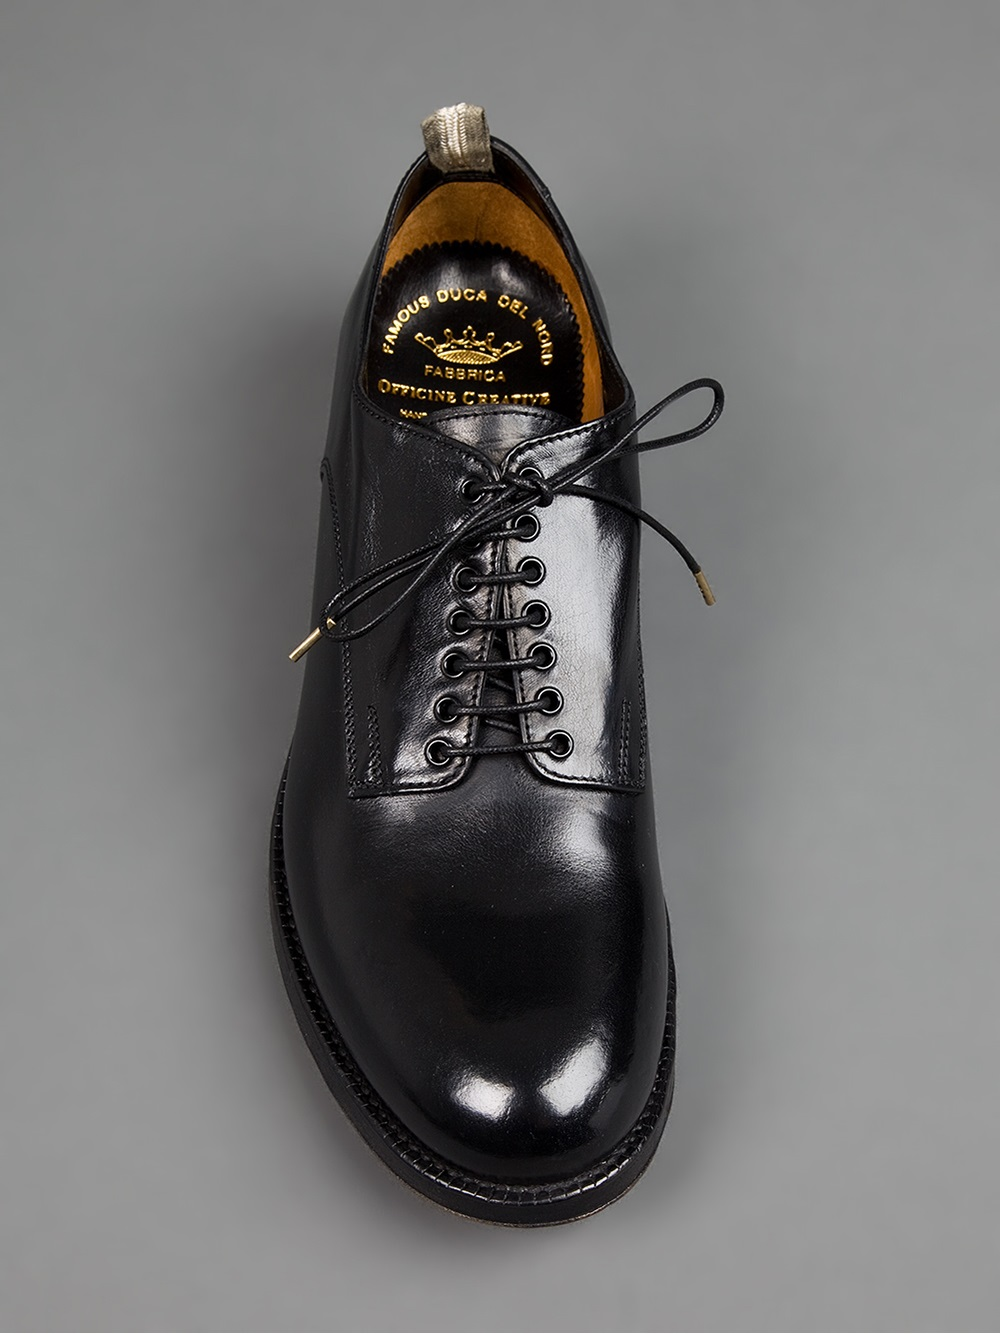 Officine creative Anatomia derby shoes